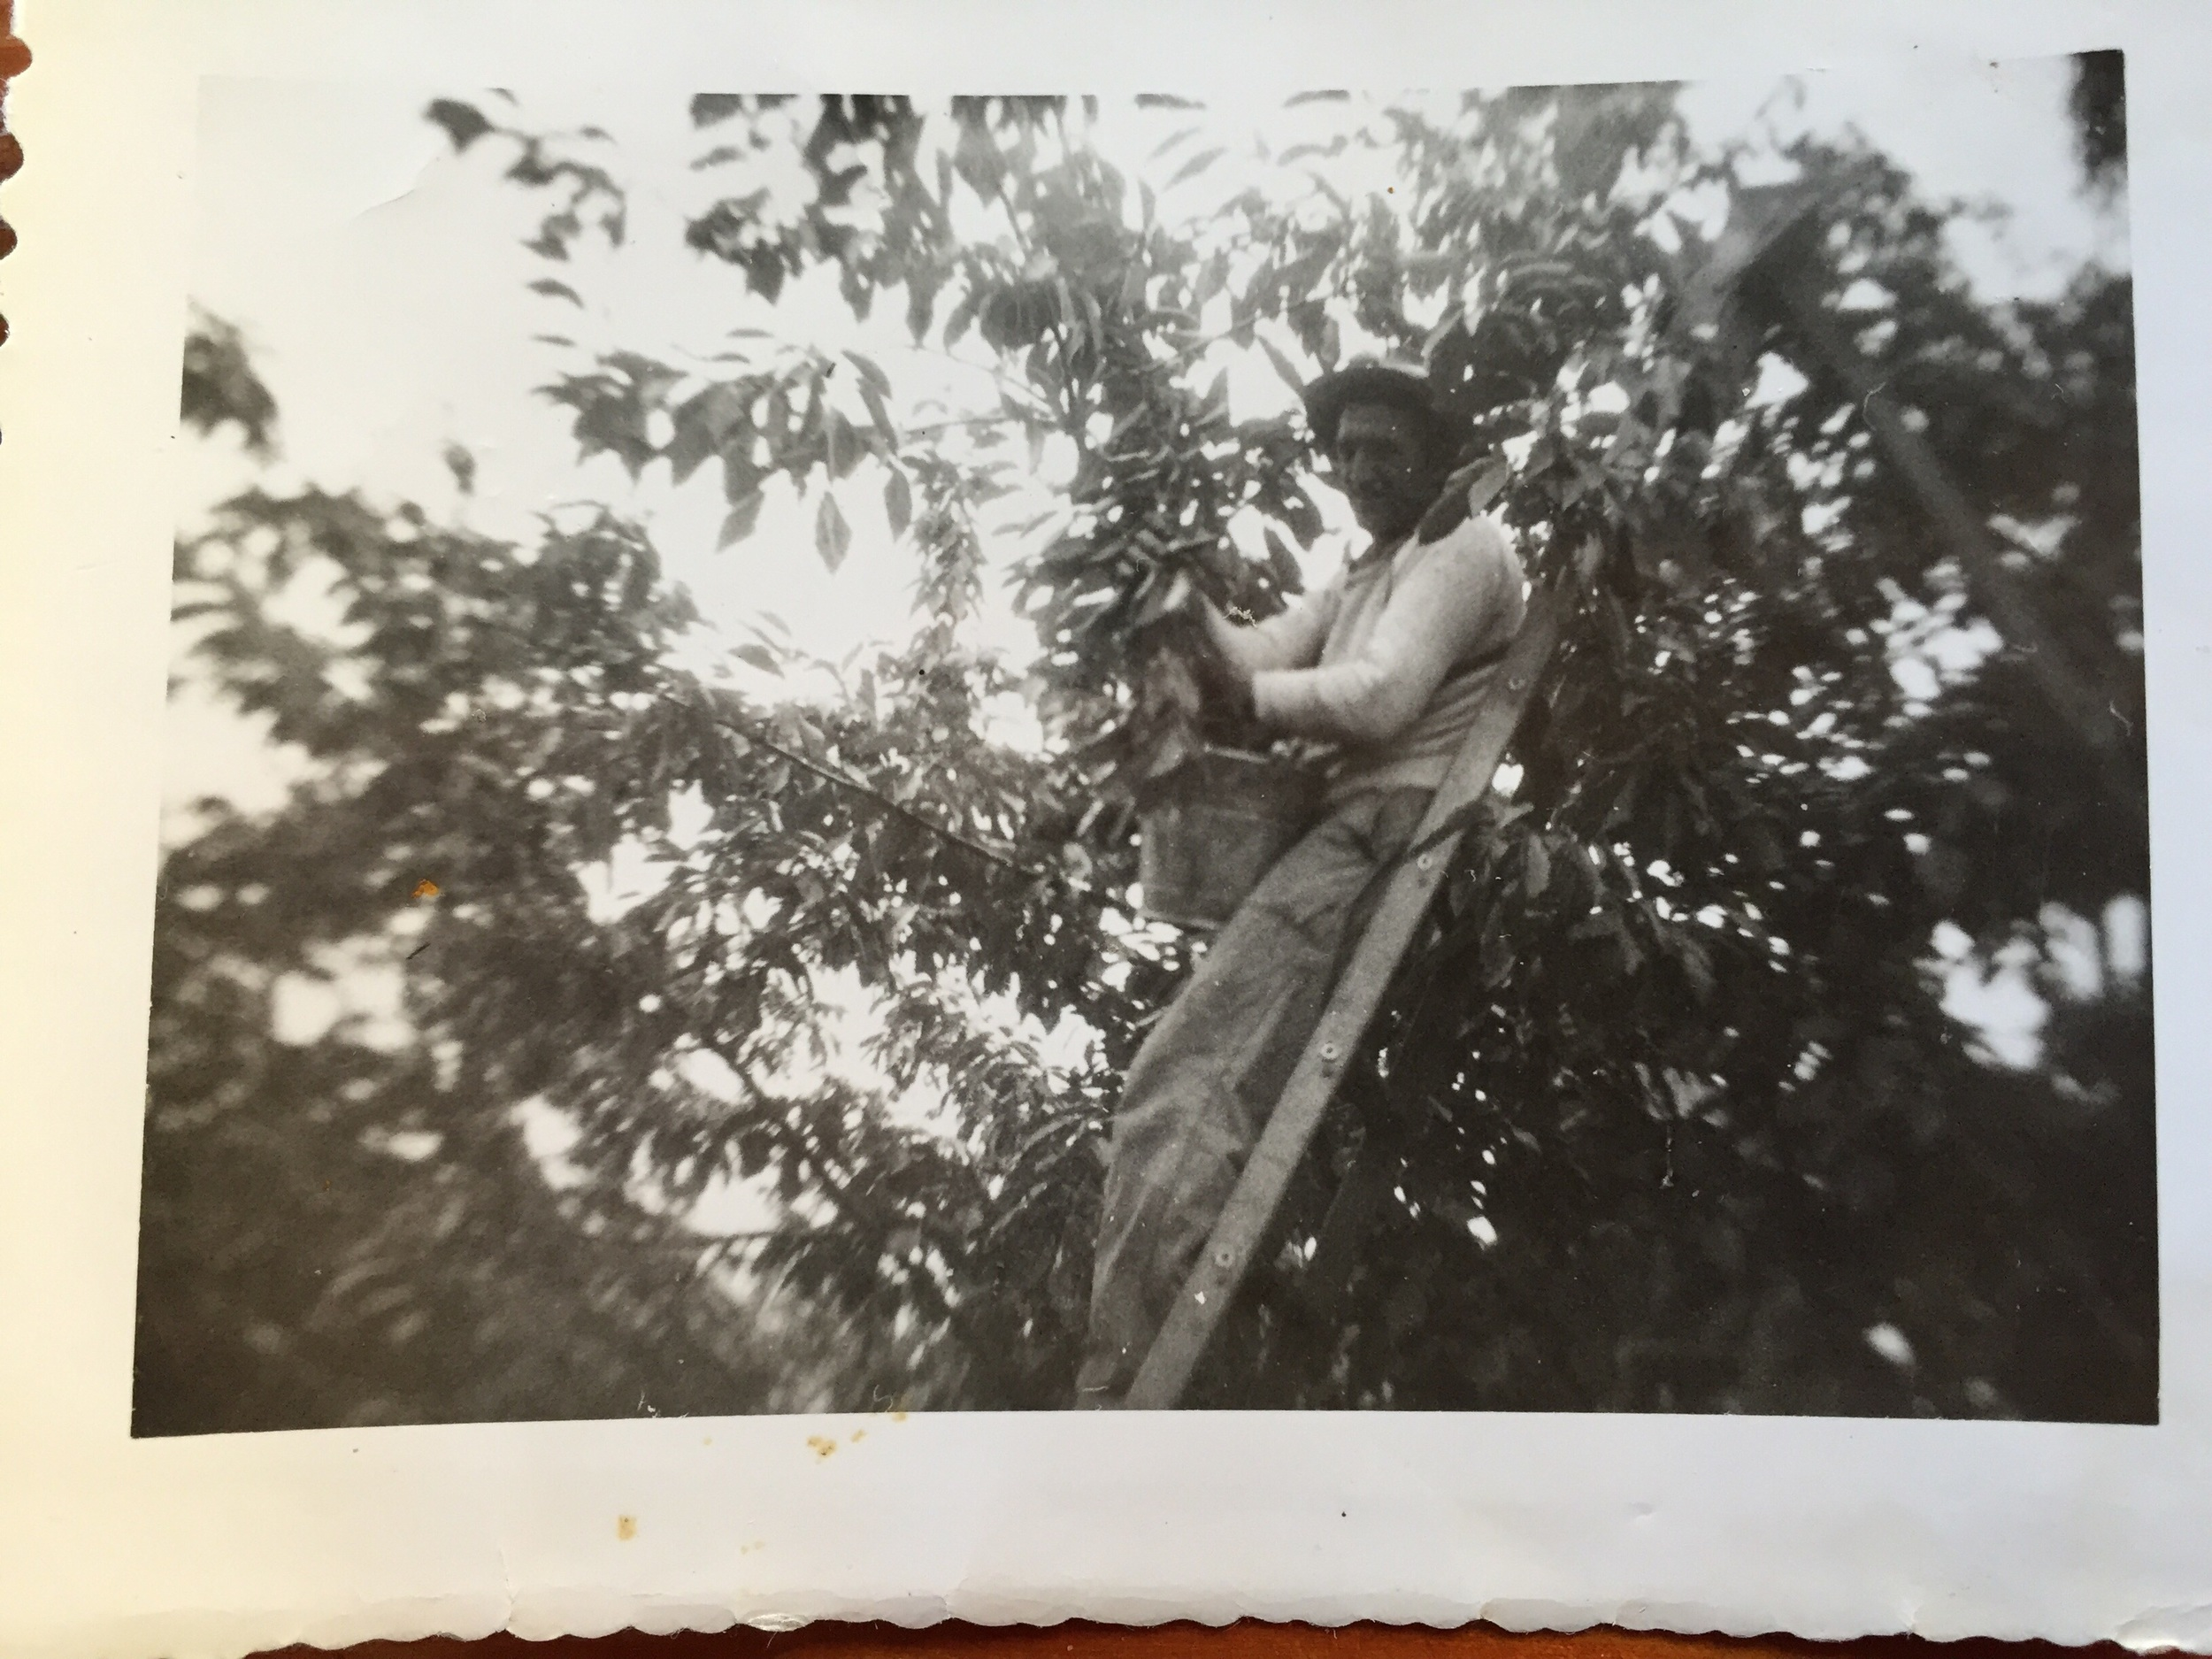 """Grandpa busting it in an orchard. Back of the photo reads """"Another day another $ /Maybe""""."""